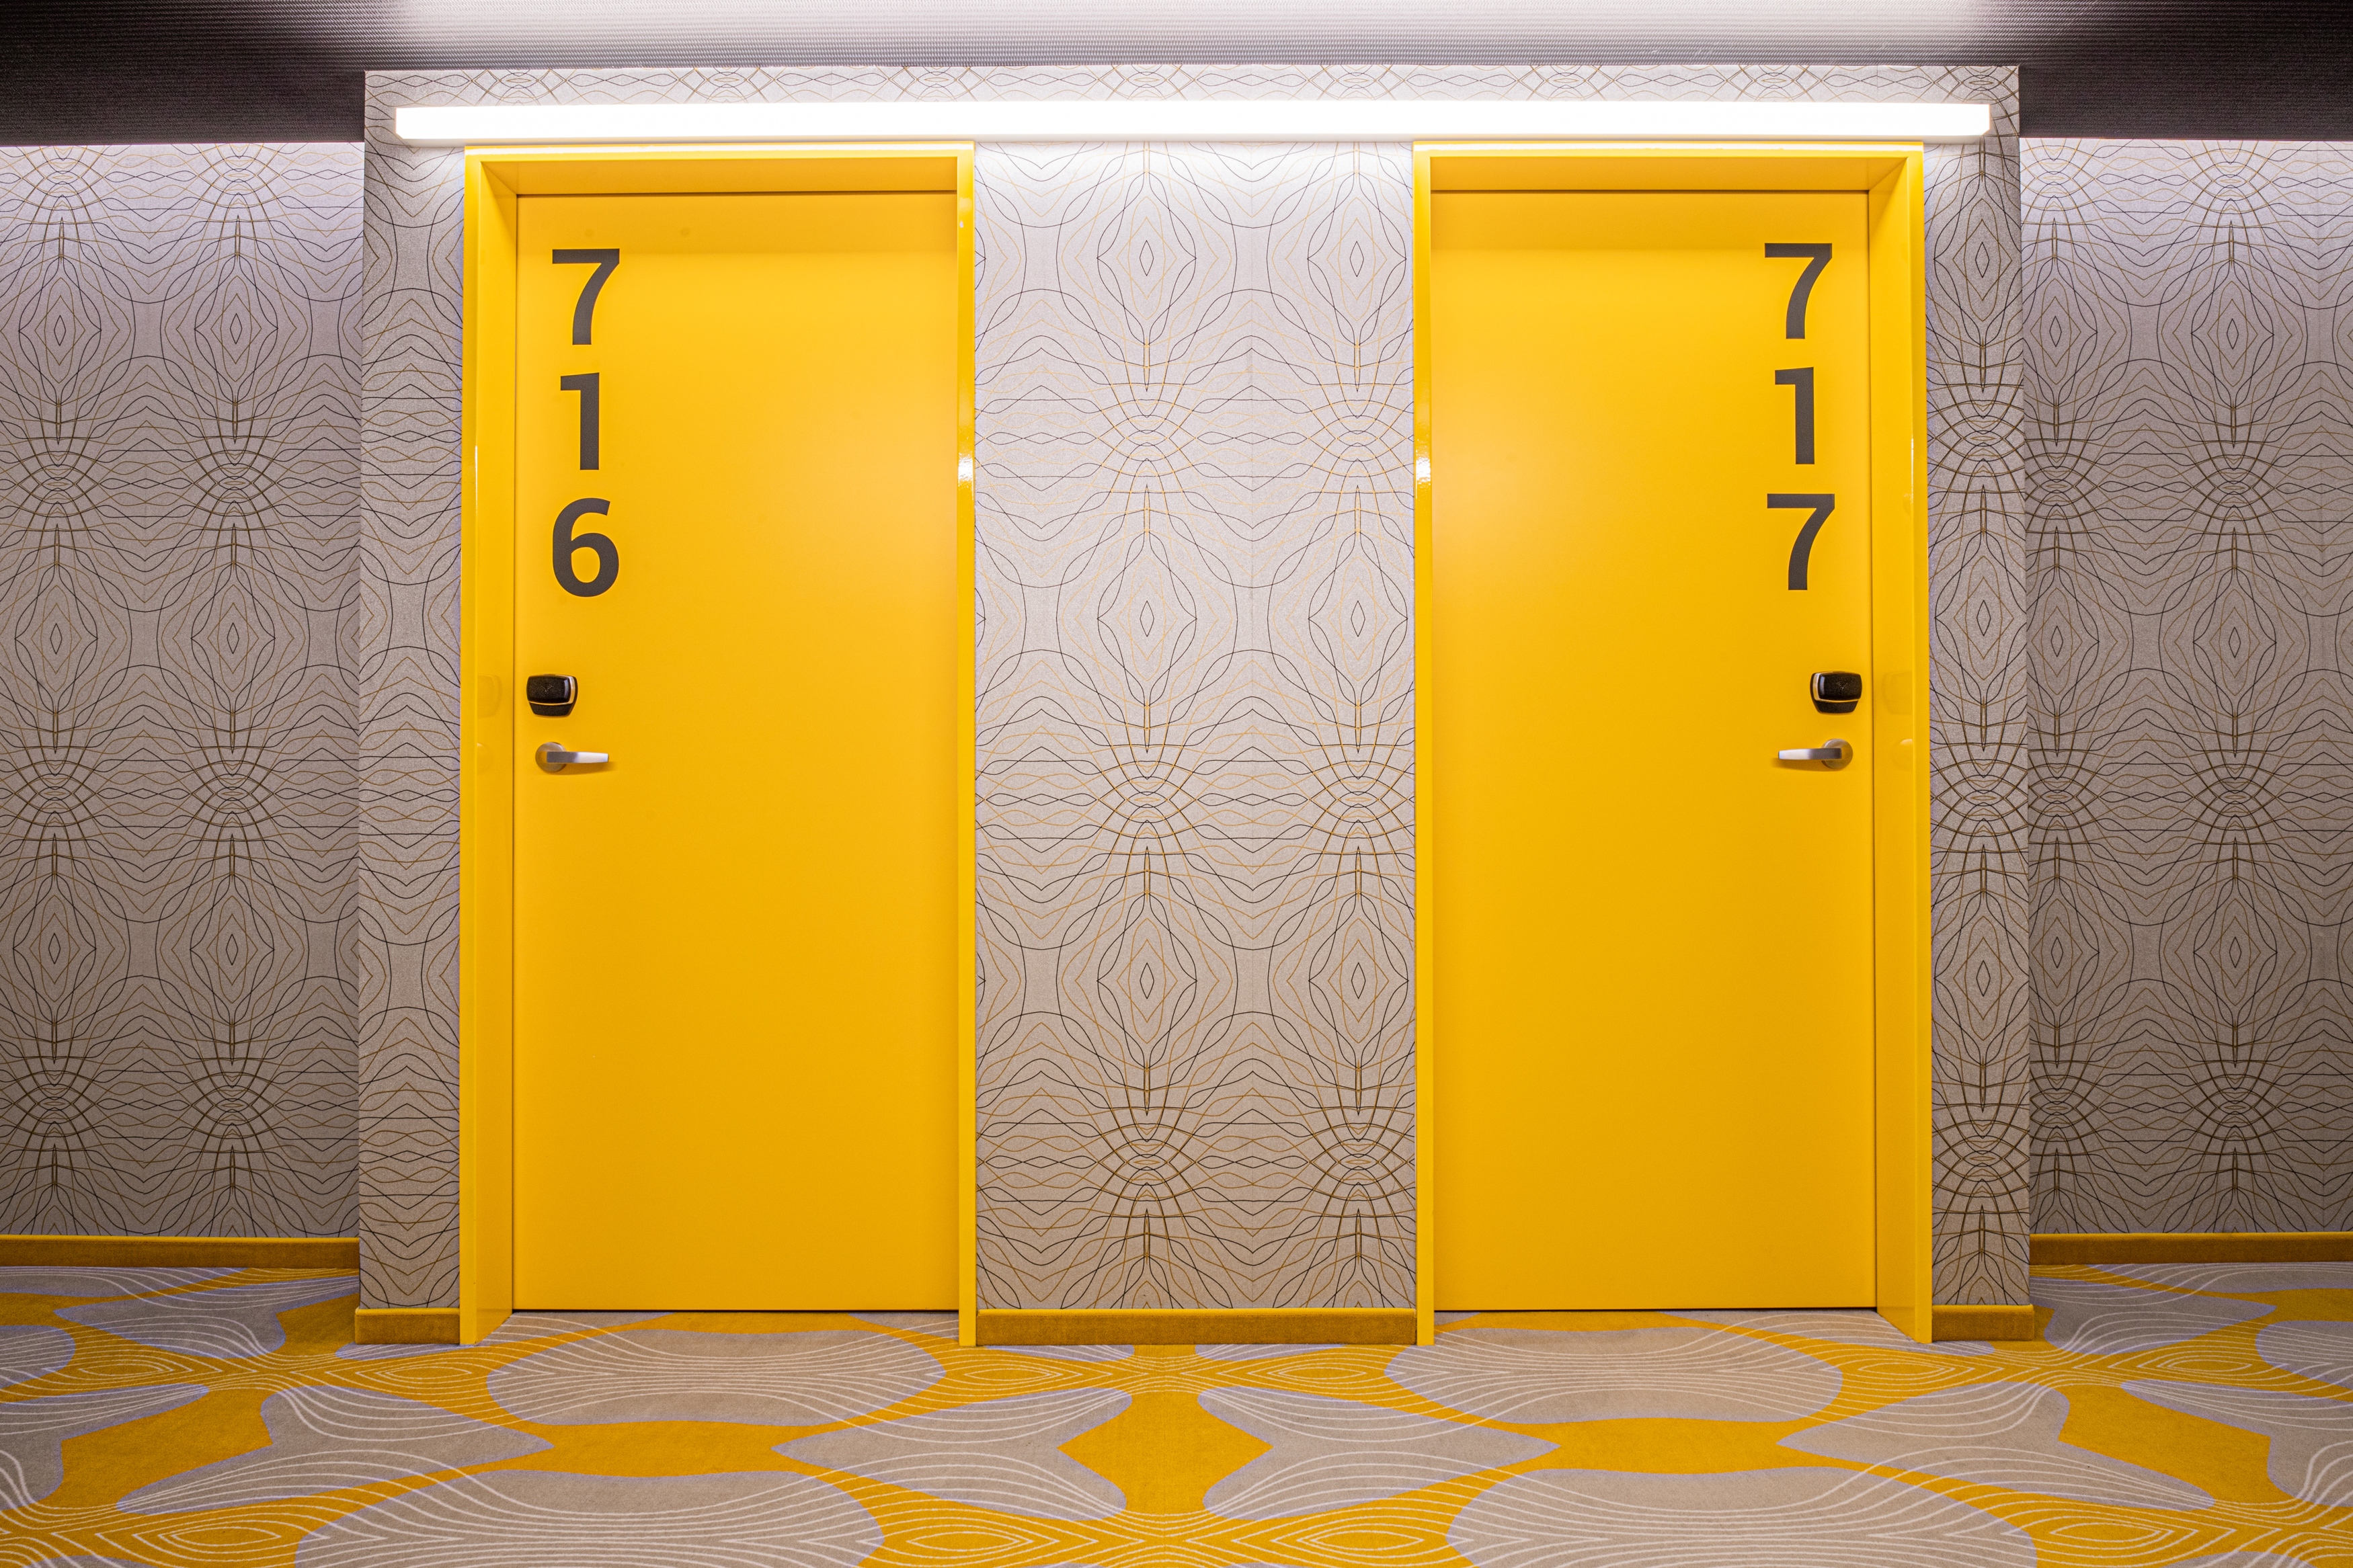 prizeotel Bern-City - Room doors